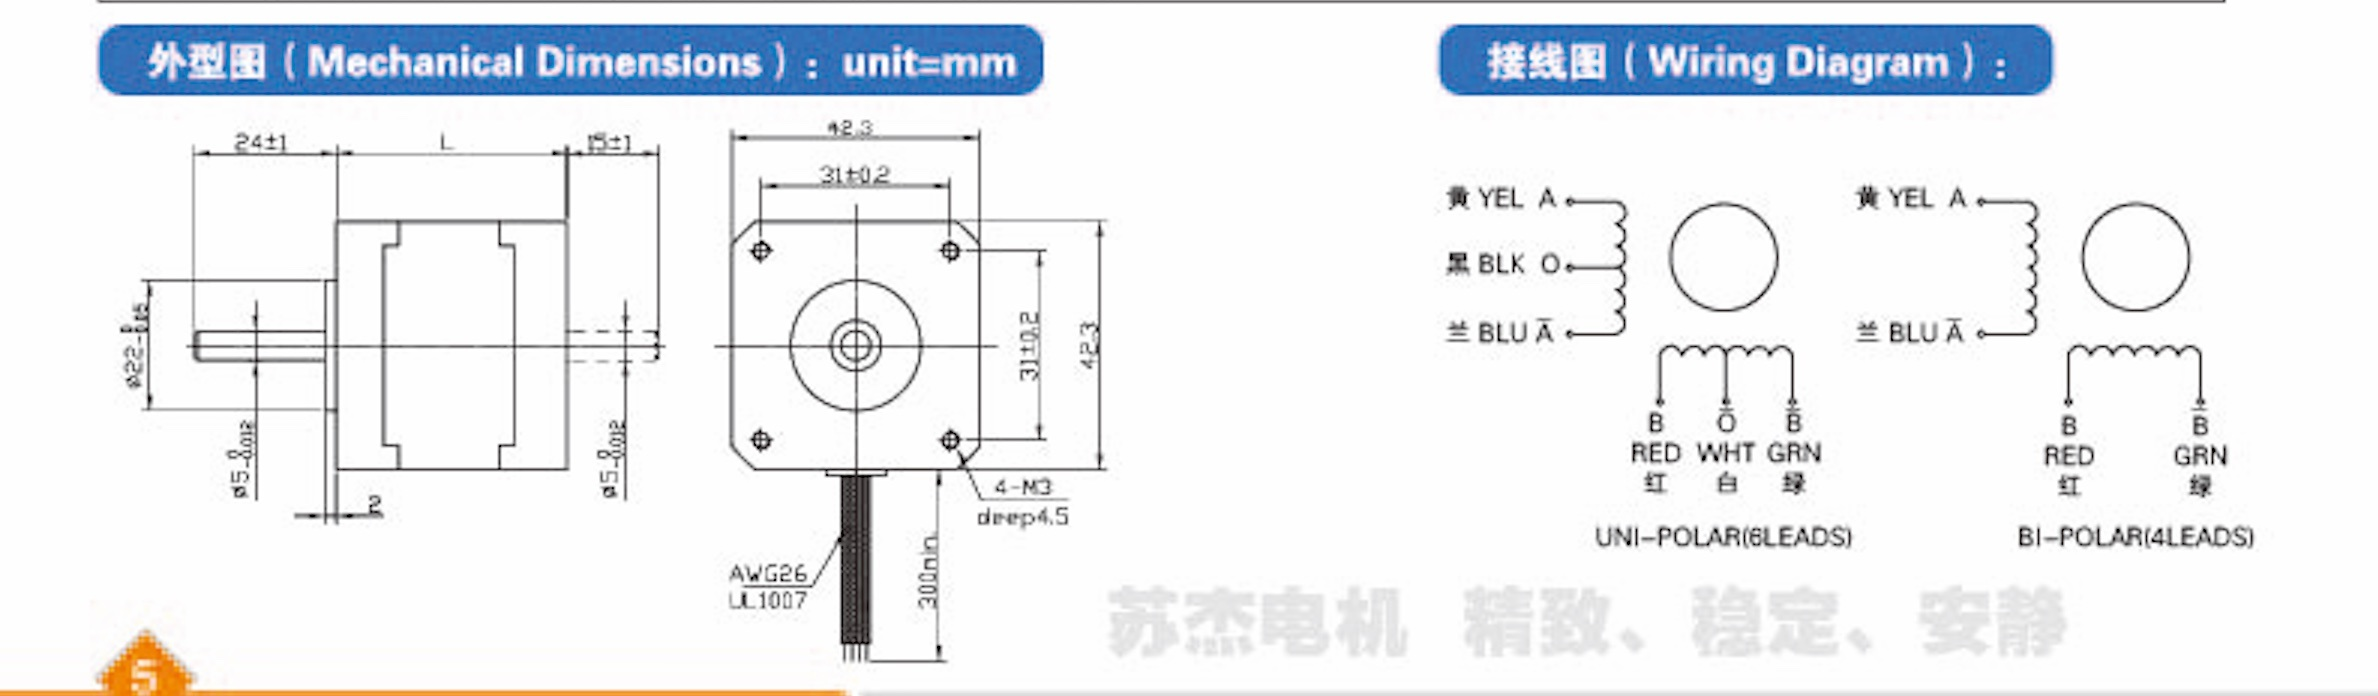 Gear Motor Stepper With Nema17 Size 28mm Length Servo Sewing Machine Wiring Diagram Notewe Can Manufacture Products According To Customers Requirements